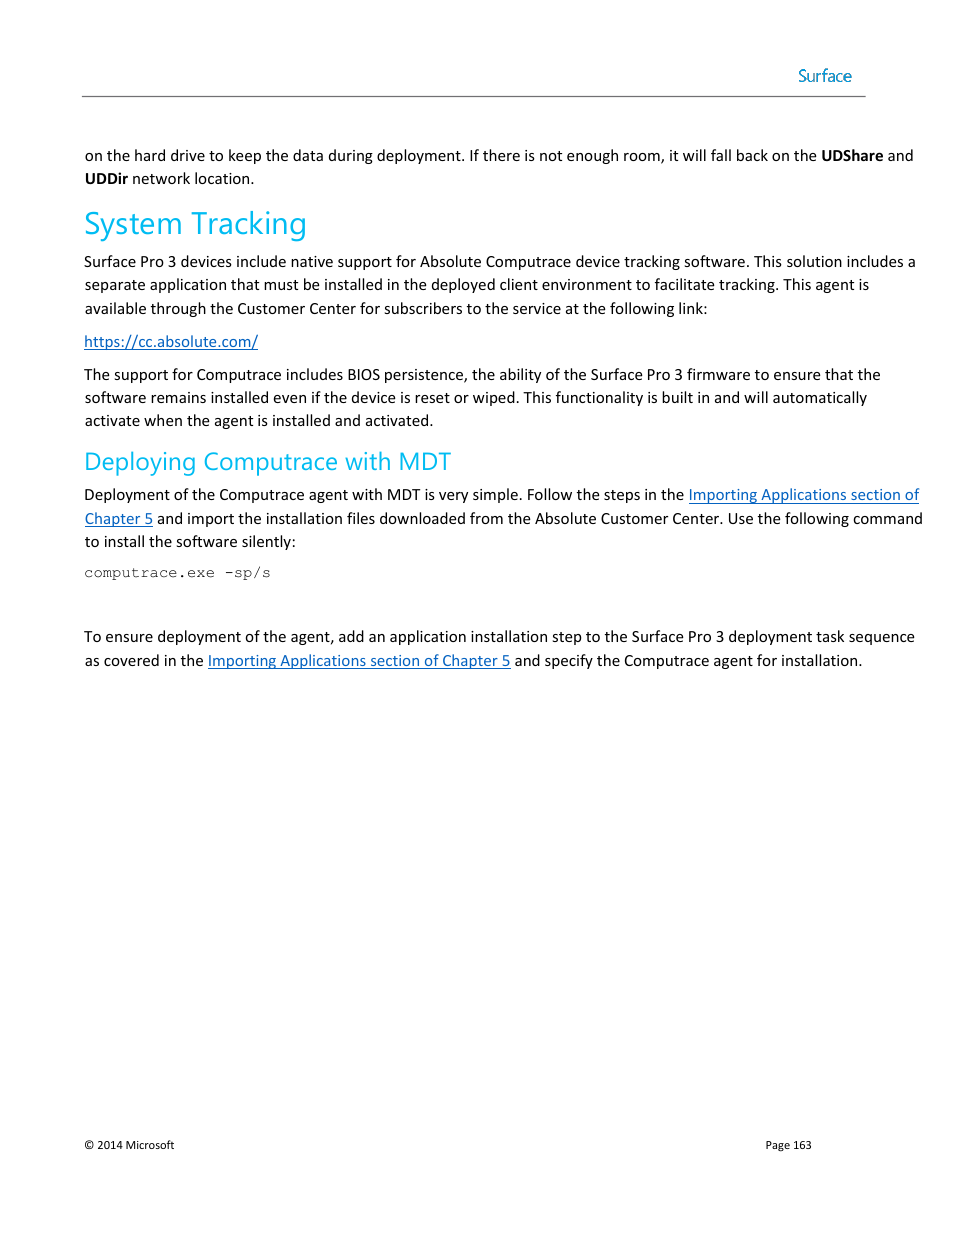 system tracking deploying computrace with mdt microsoft surface 3